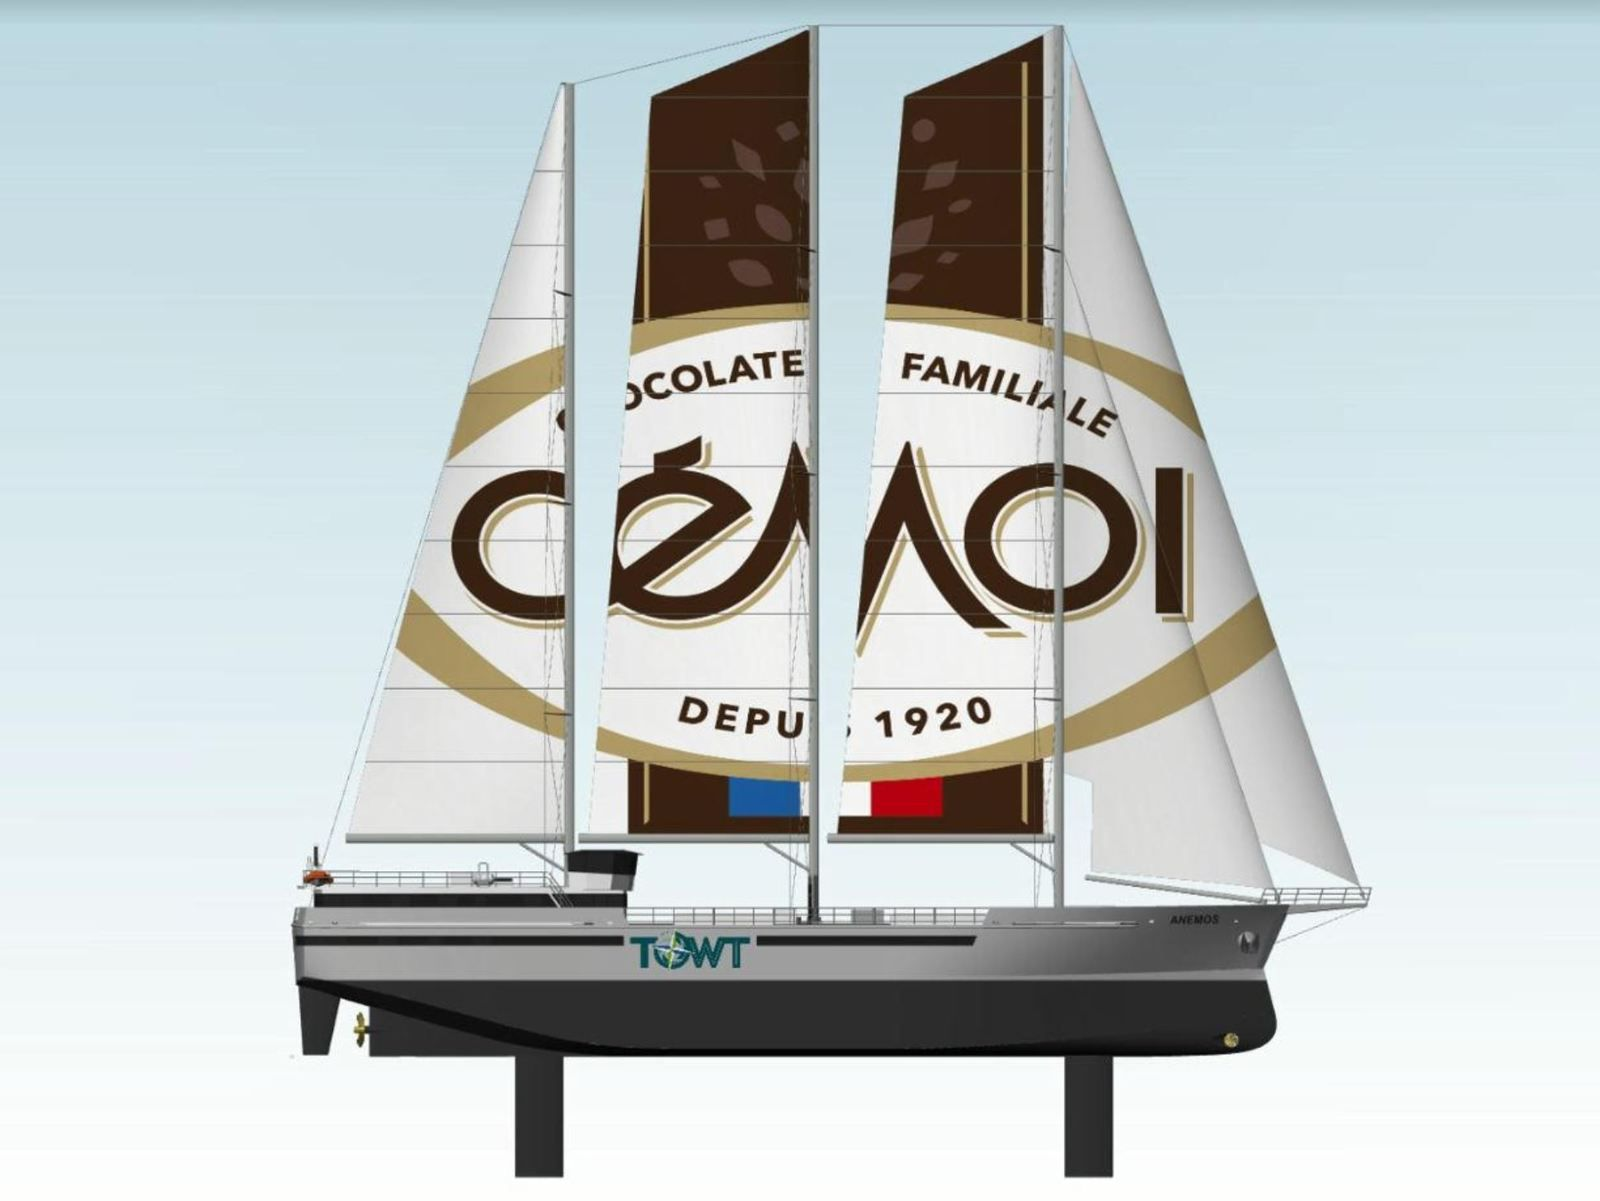 4 sailing cargo ships, to transport cocoa from the French chocolate maker Cémoi